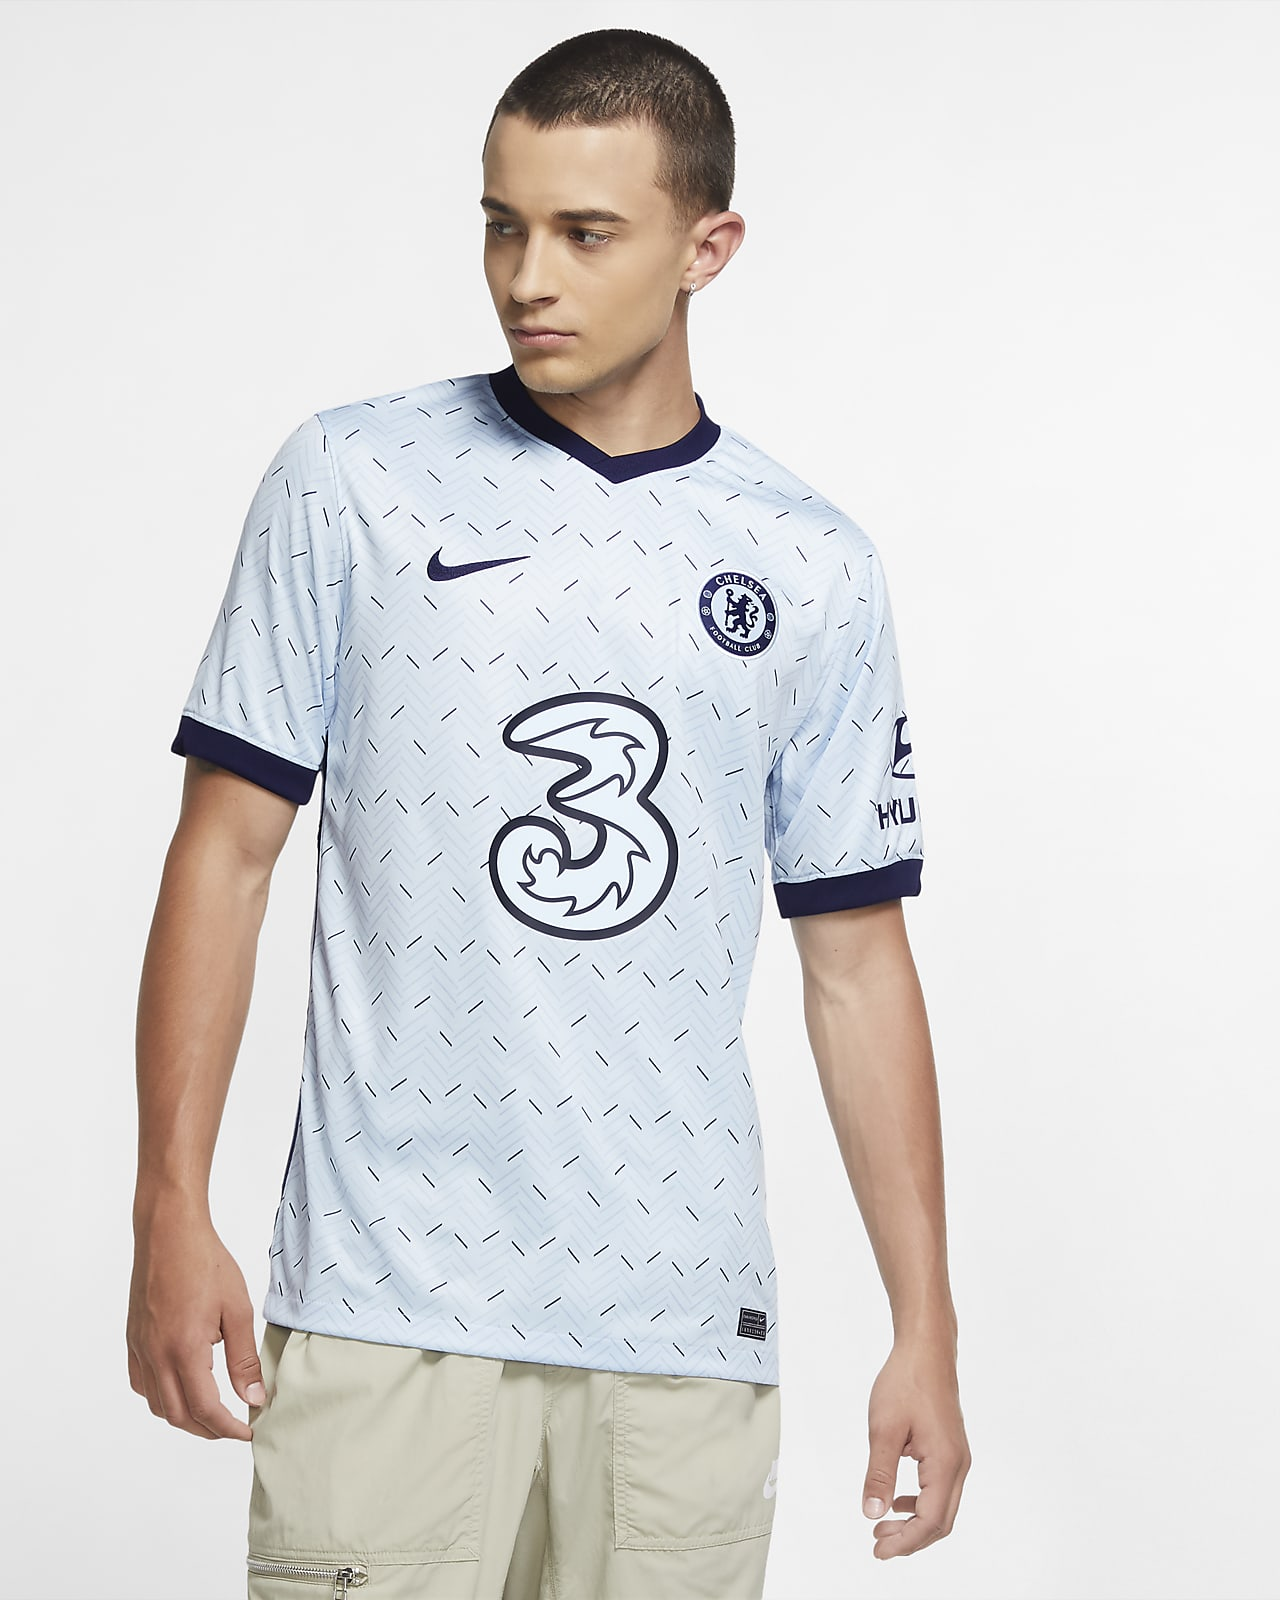 Chelsea F.C. 2020/21 Stadium Away Men's Football Shirt